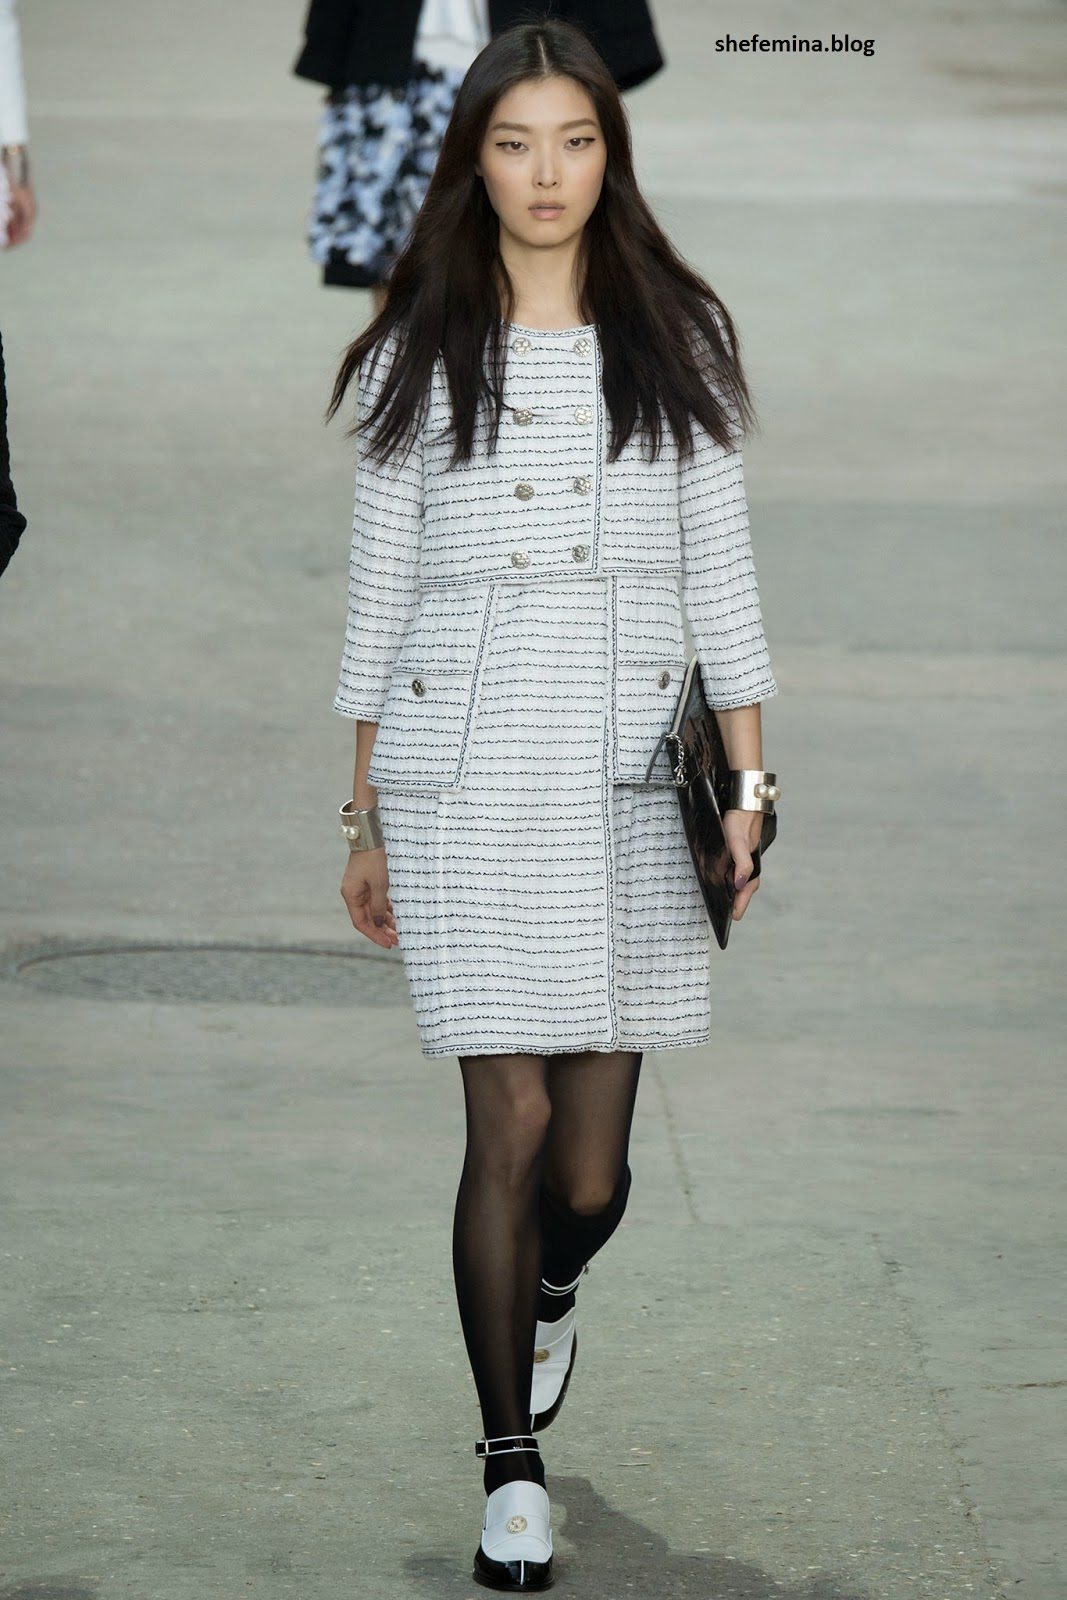 Chanel Spring 2015 dresses HD wallpaper 20